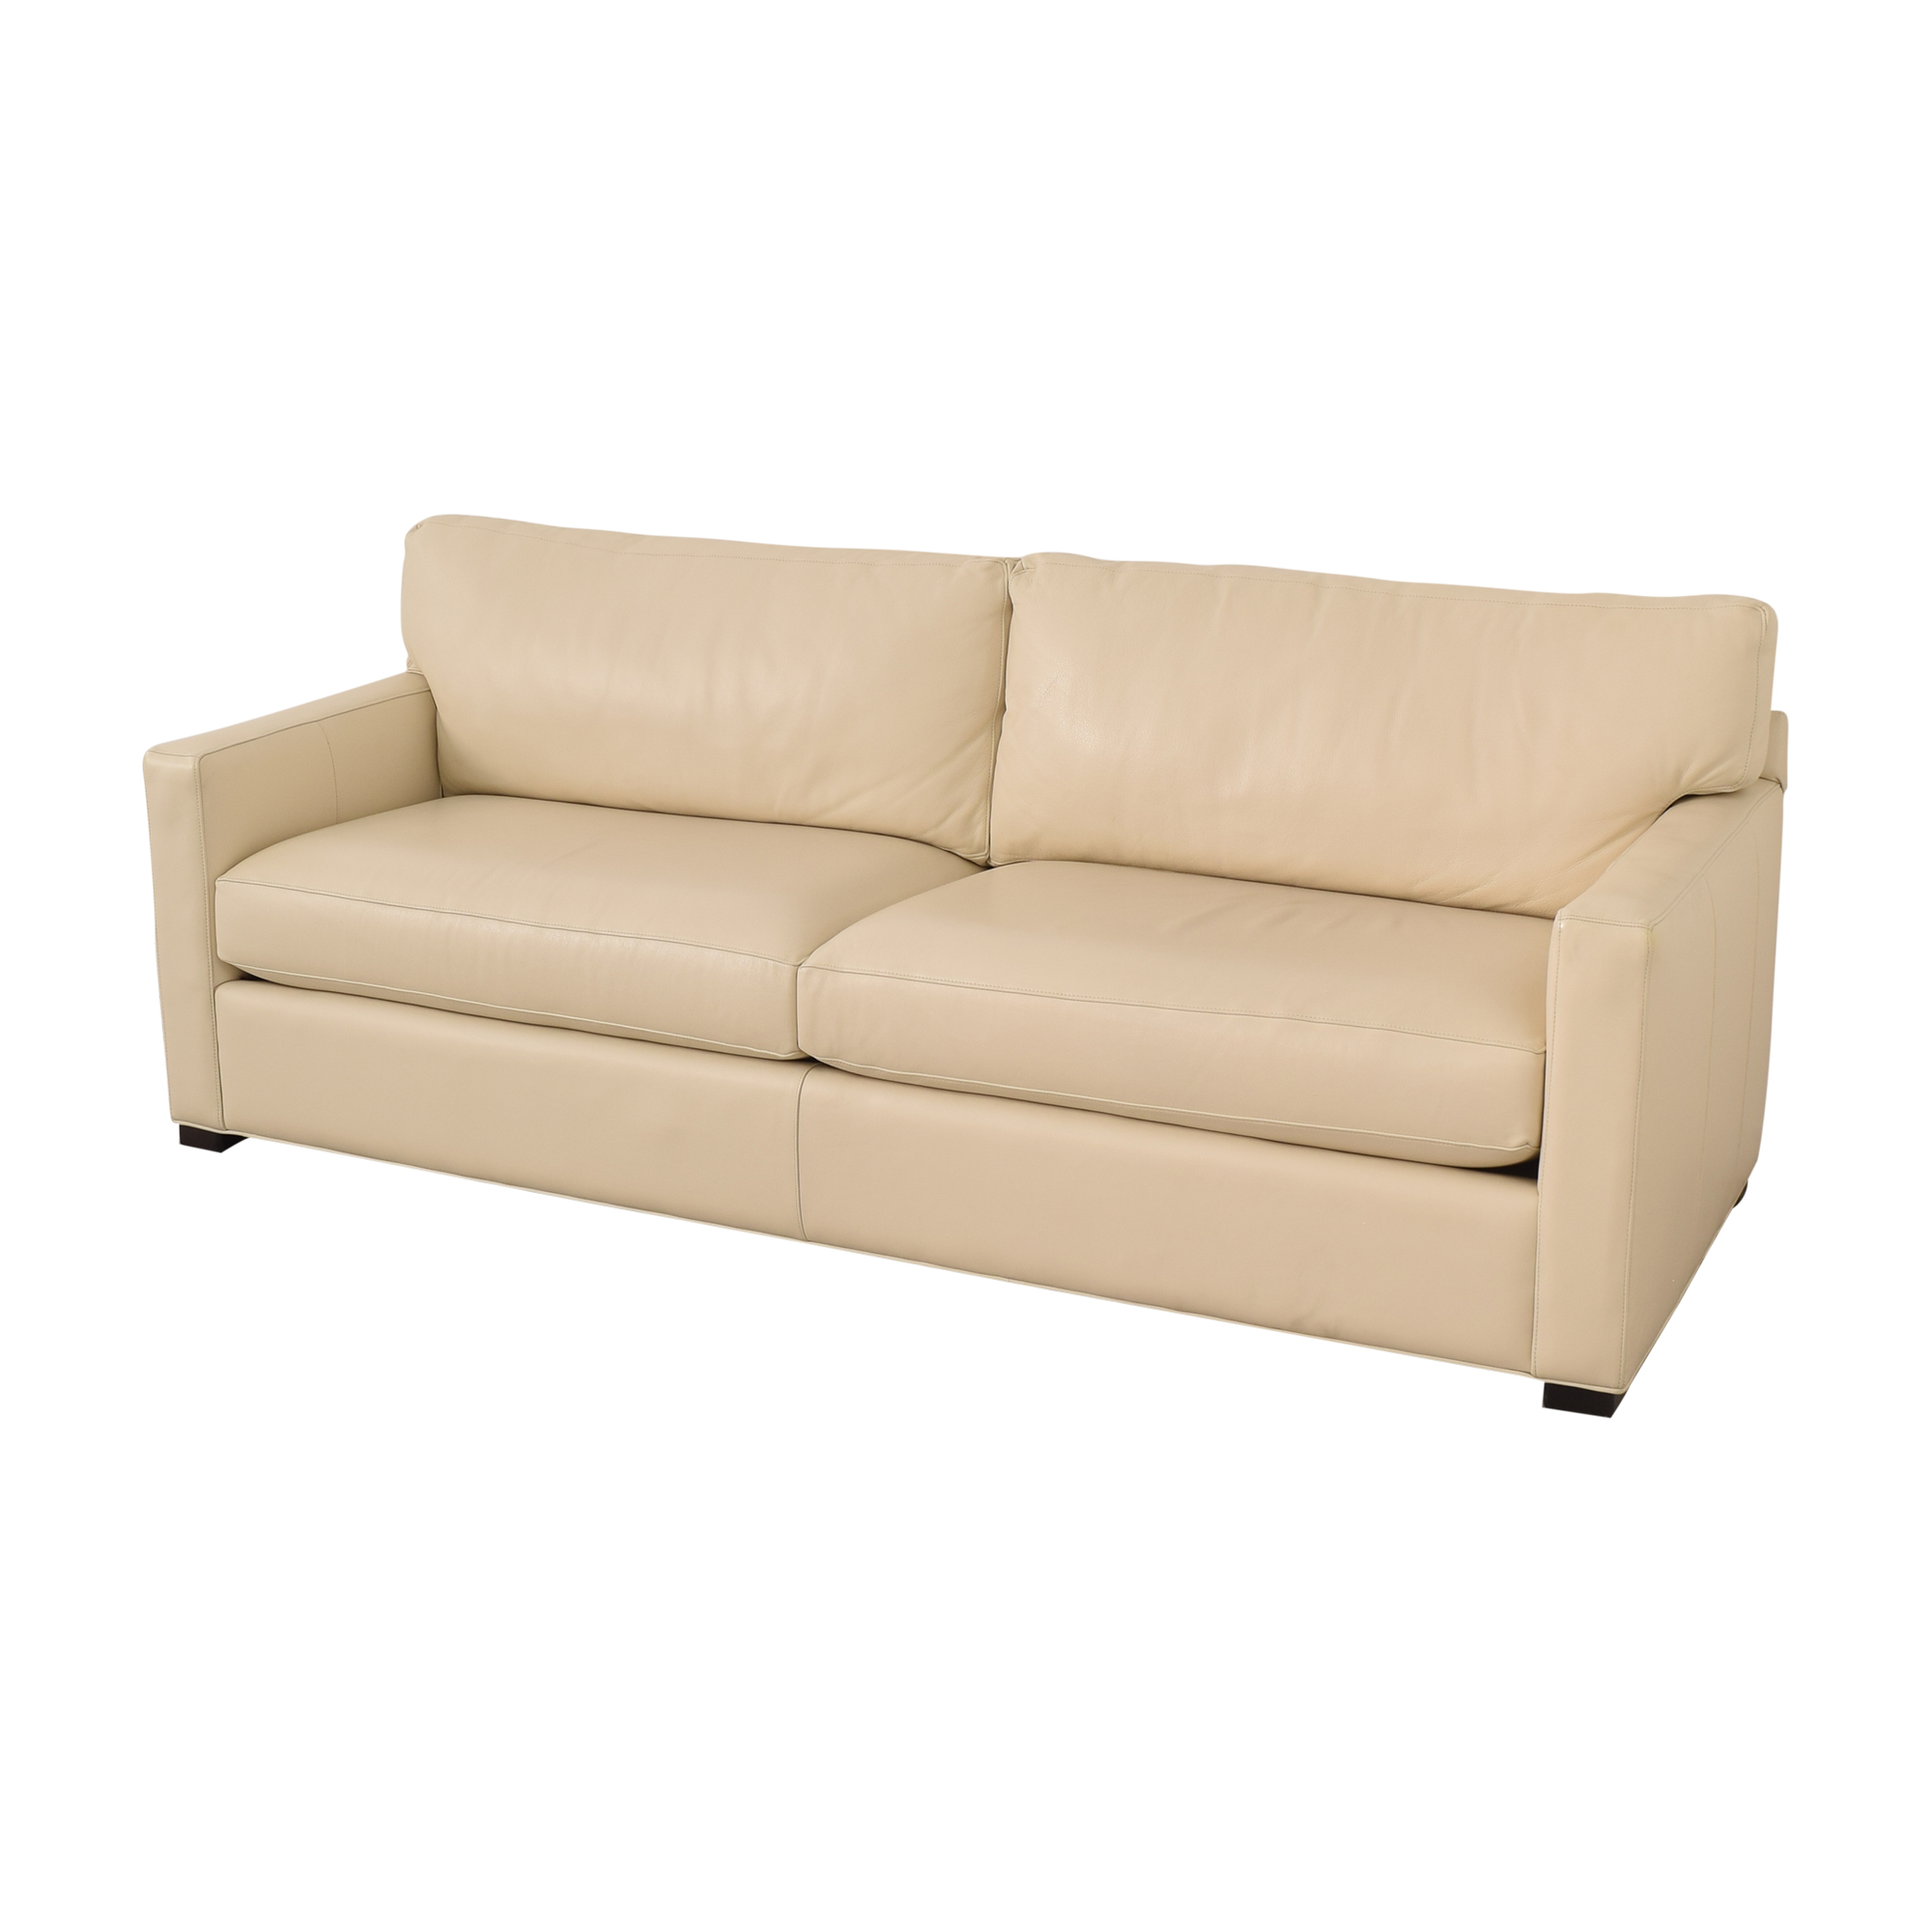 Room & Board Room & Board Two Cushion Sofa for sale